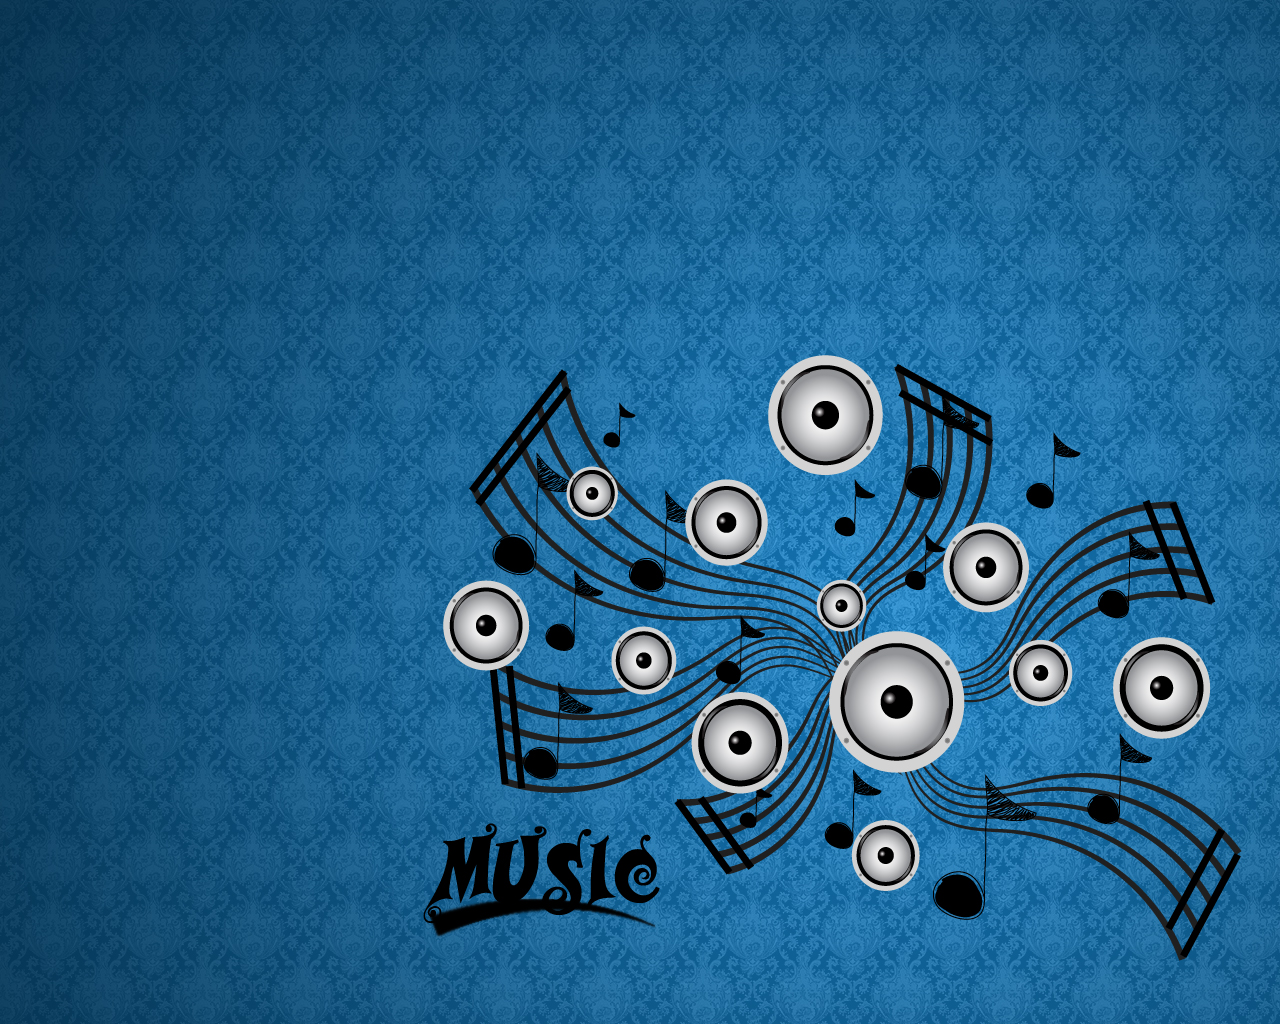 Download Desktop Wallpaper Theme Music